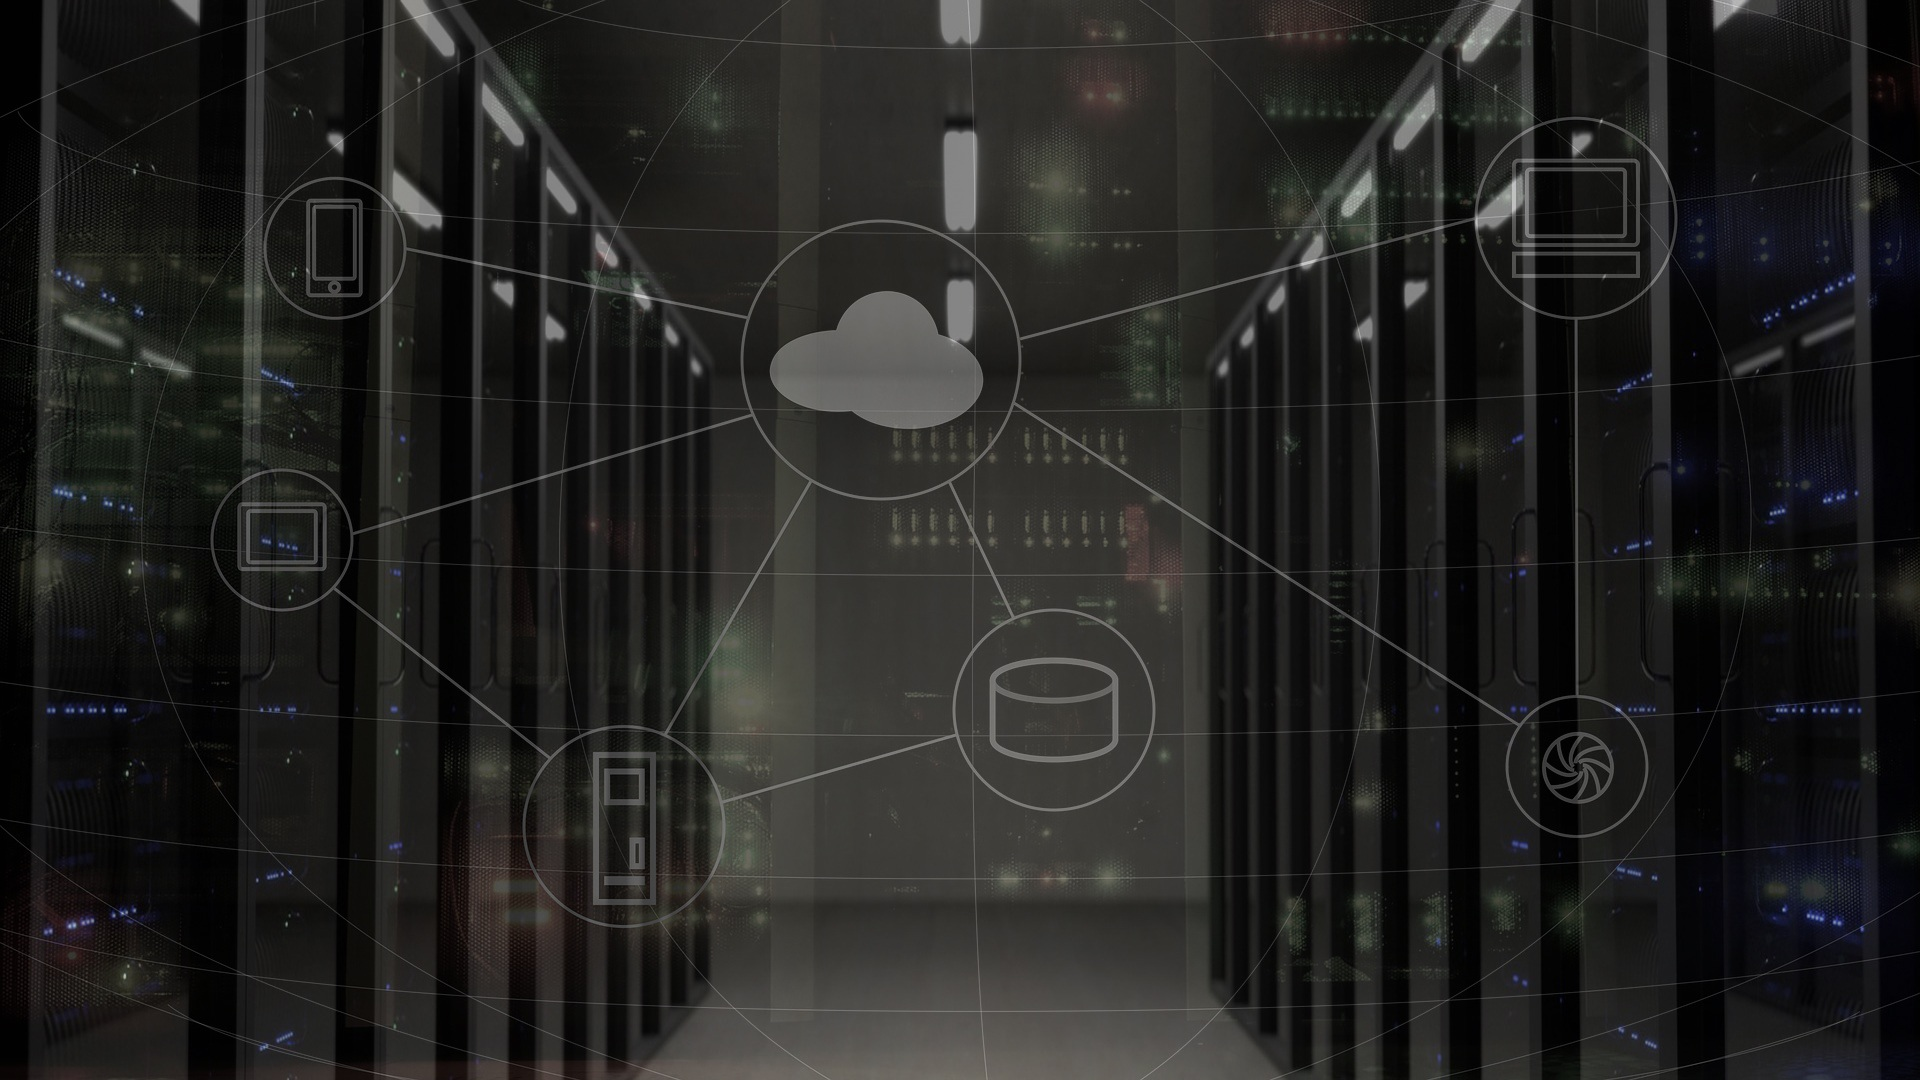 servers with cloud computing icons overlaid